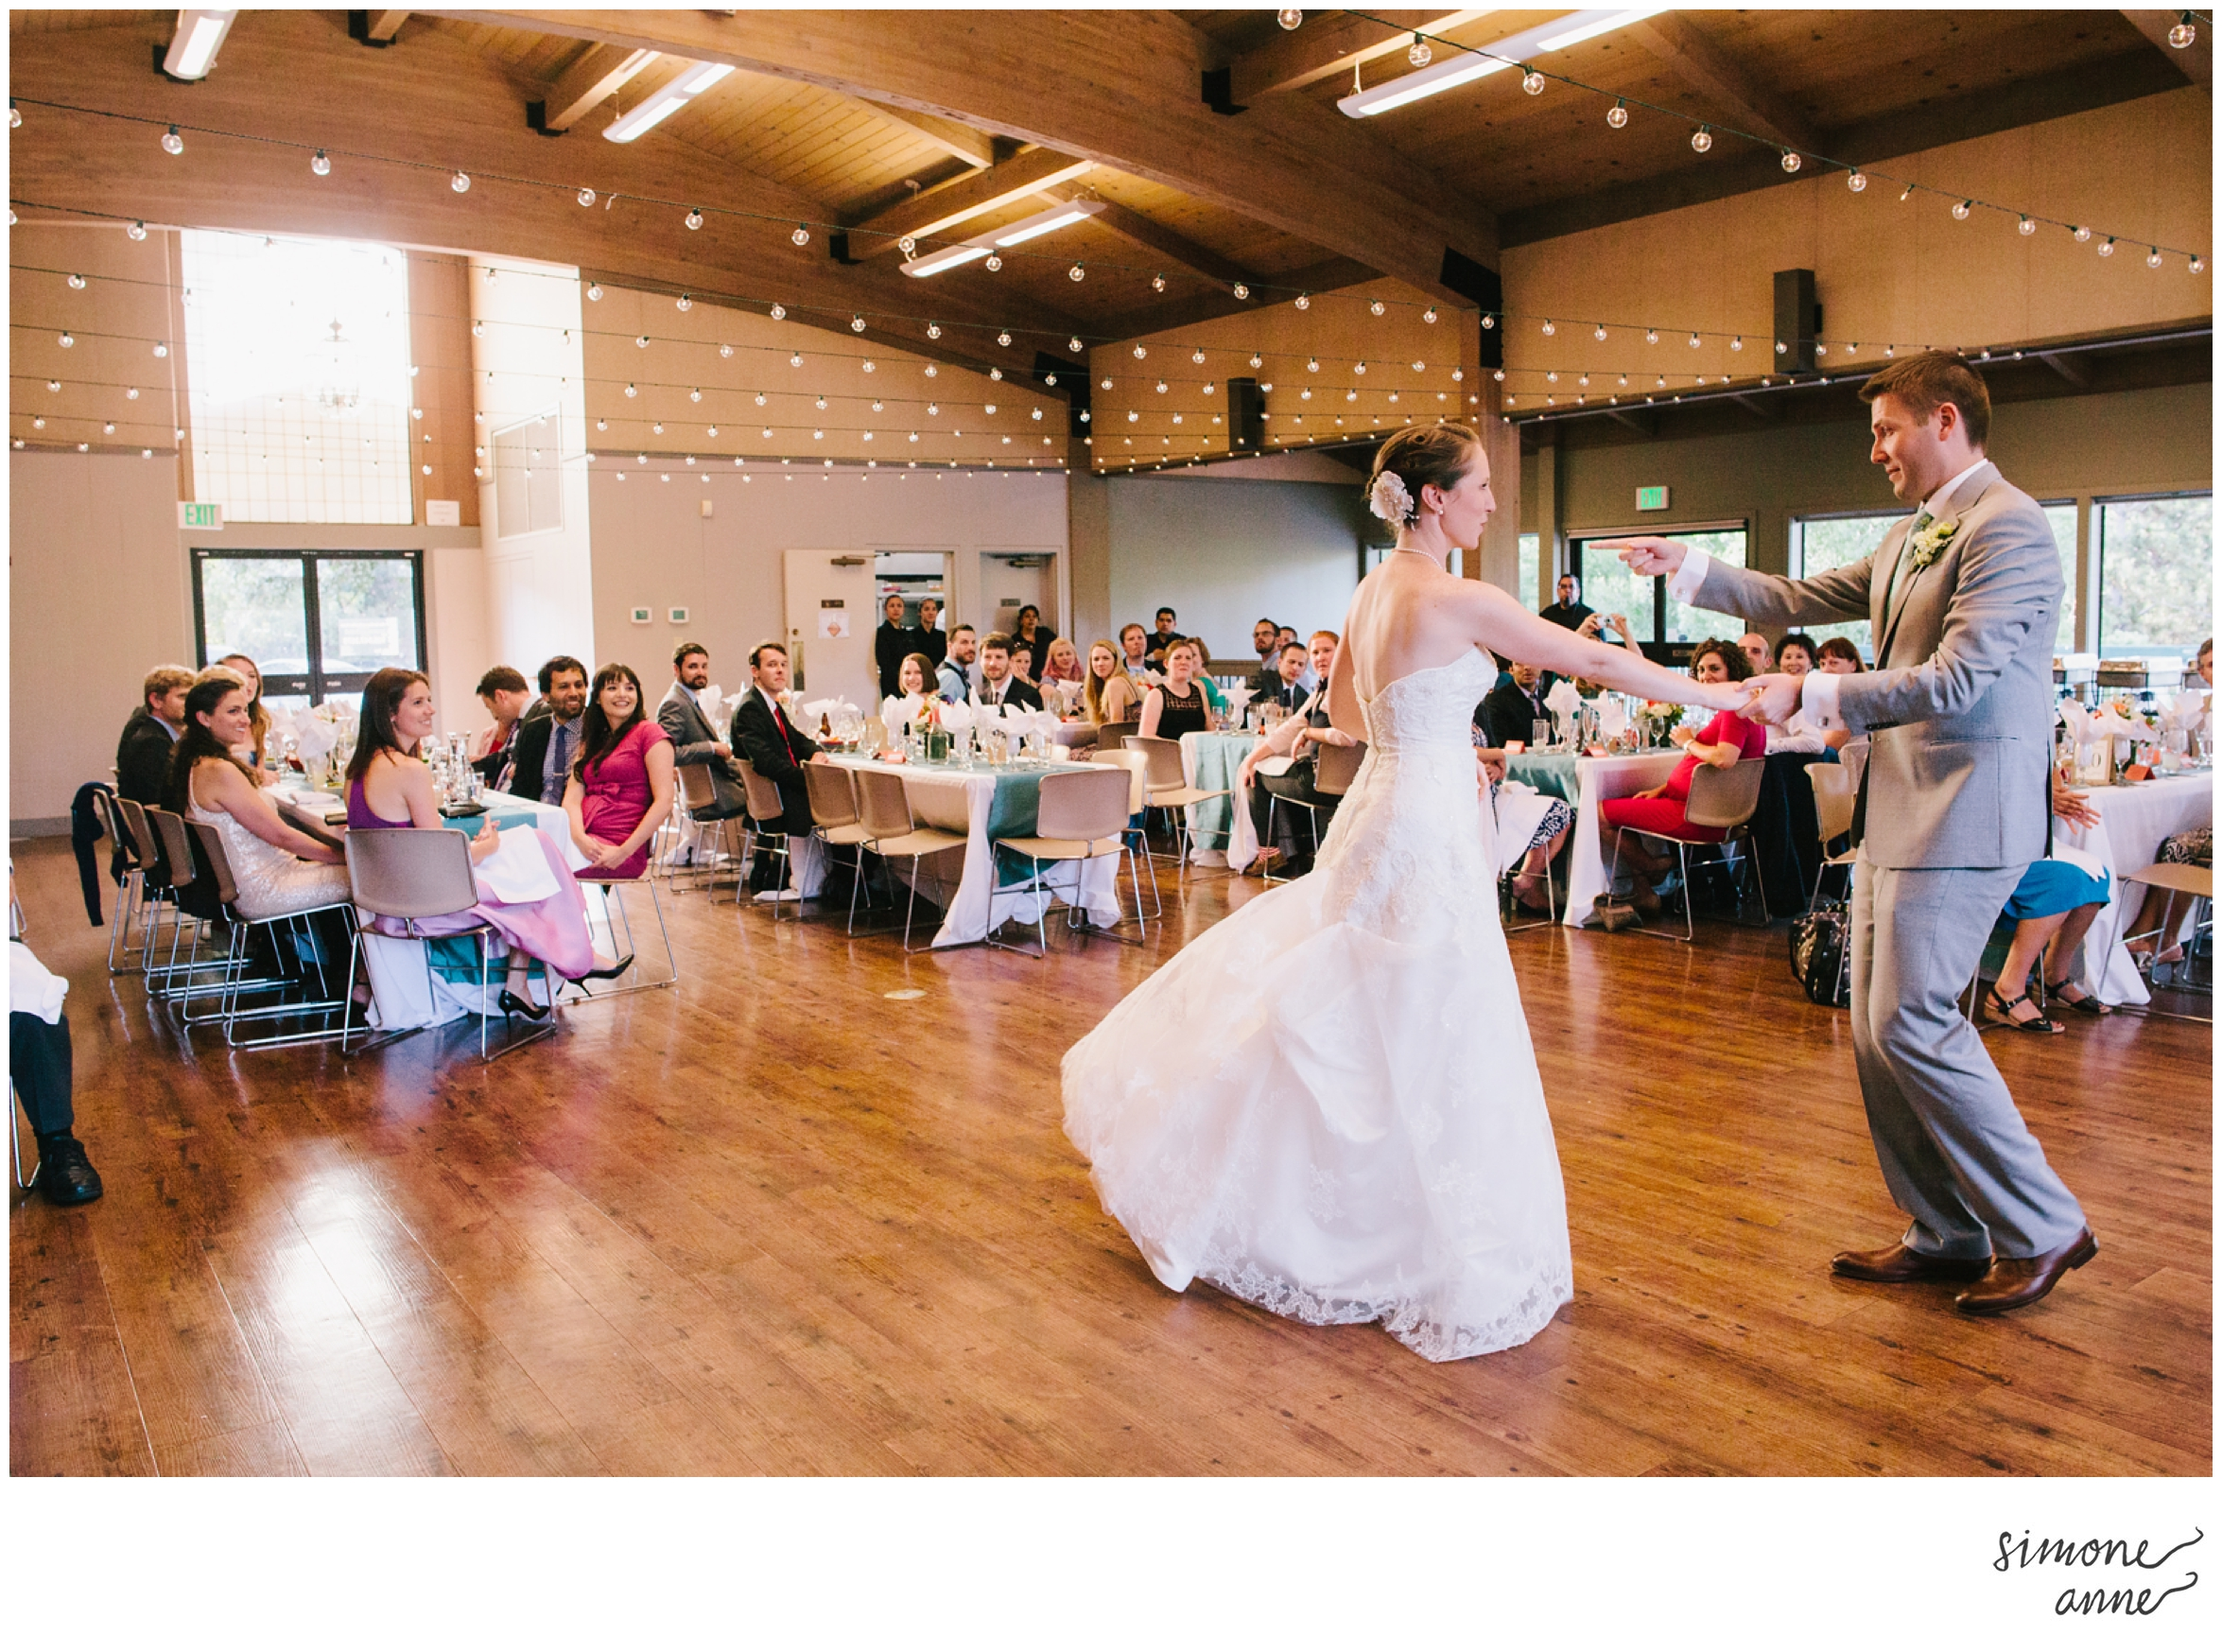 Bride and groom dance away before their guests at an afternoon wedding in the Camellia Room.